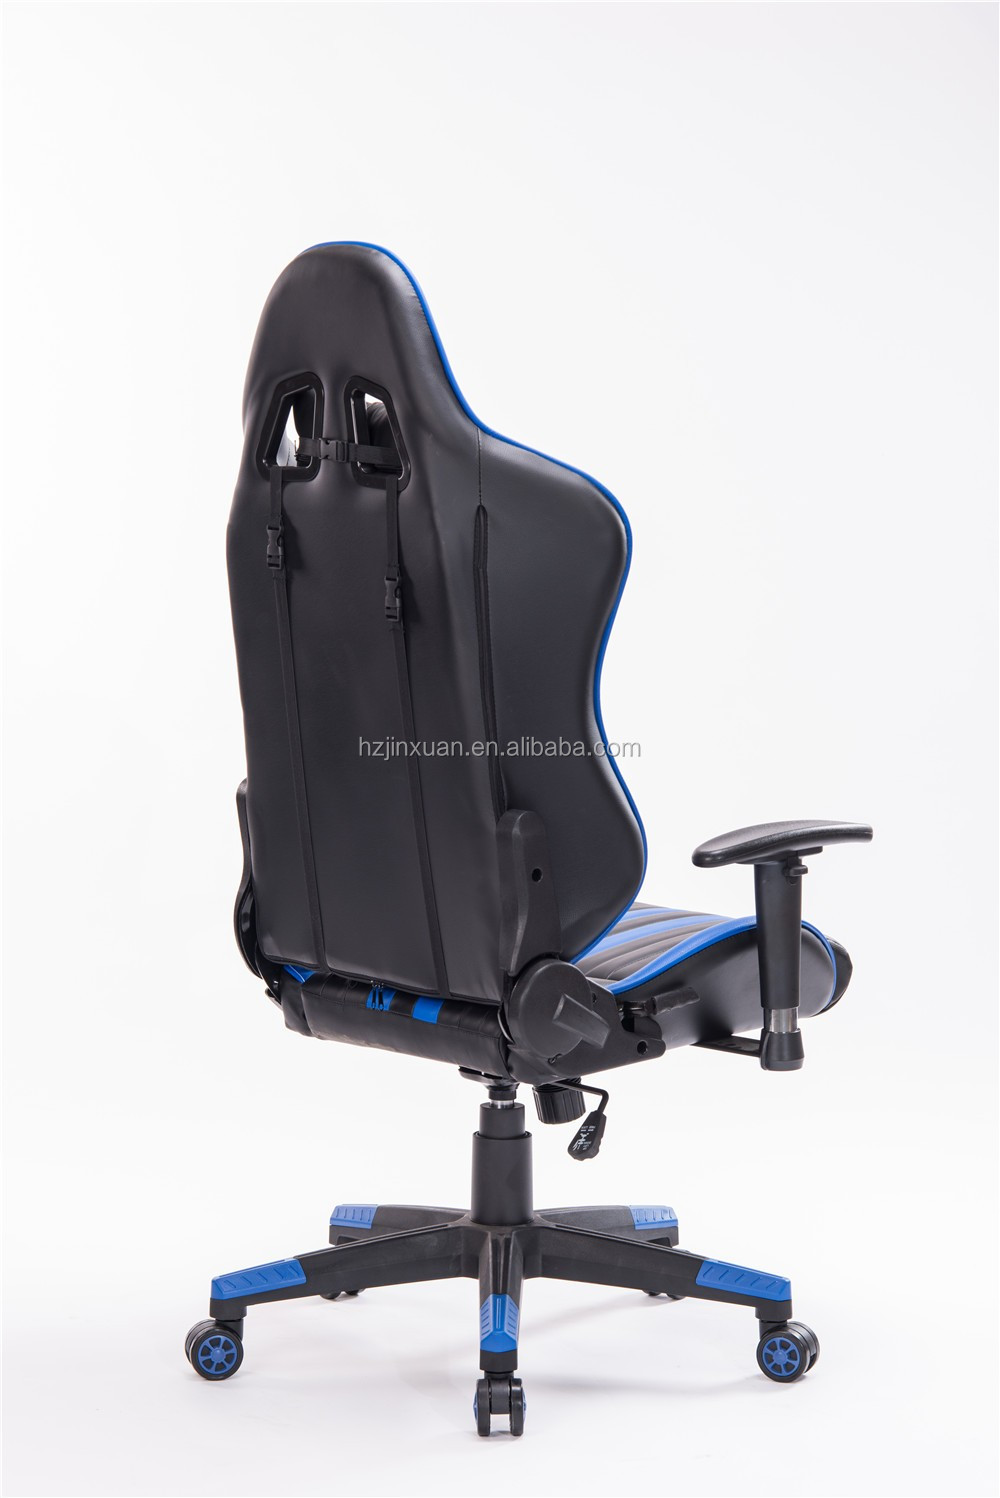 Germany Pc Party Chair Cube Chairs 3d Gaming Glass And Motion Chair Sofa  Camping Sun Lounger Gaming Pod Seat - Buy Pc Party Chair,Cube Chairs,3d